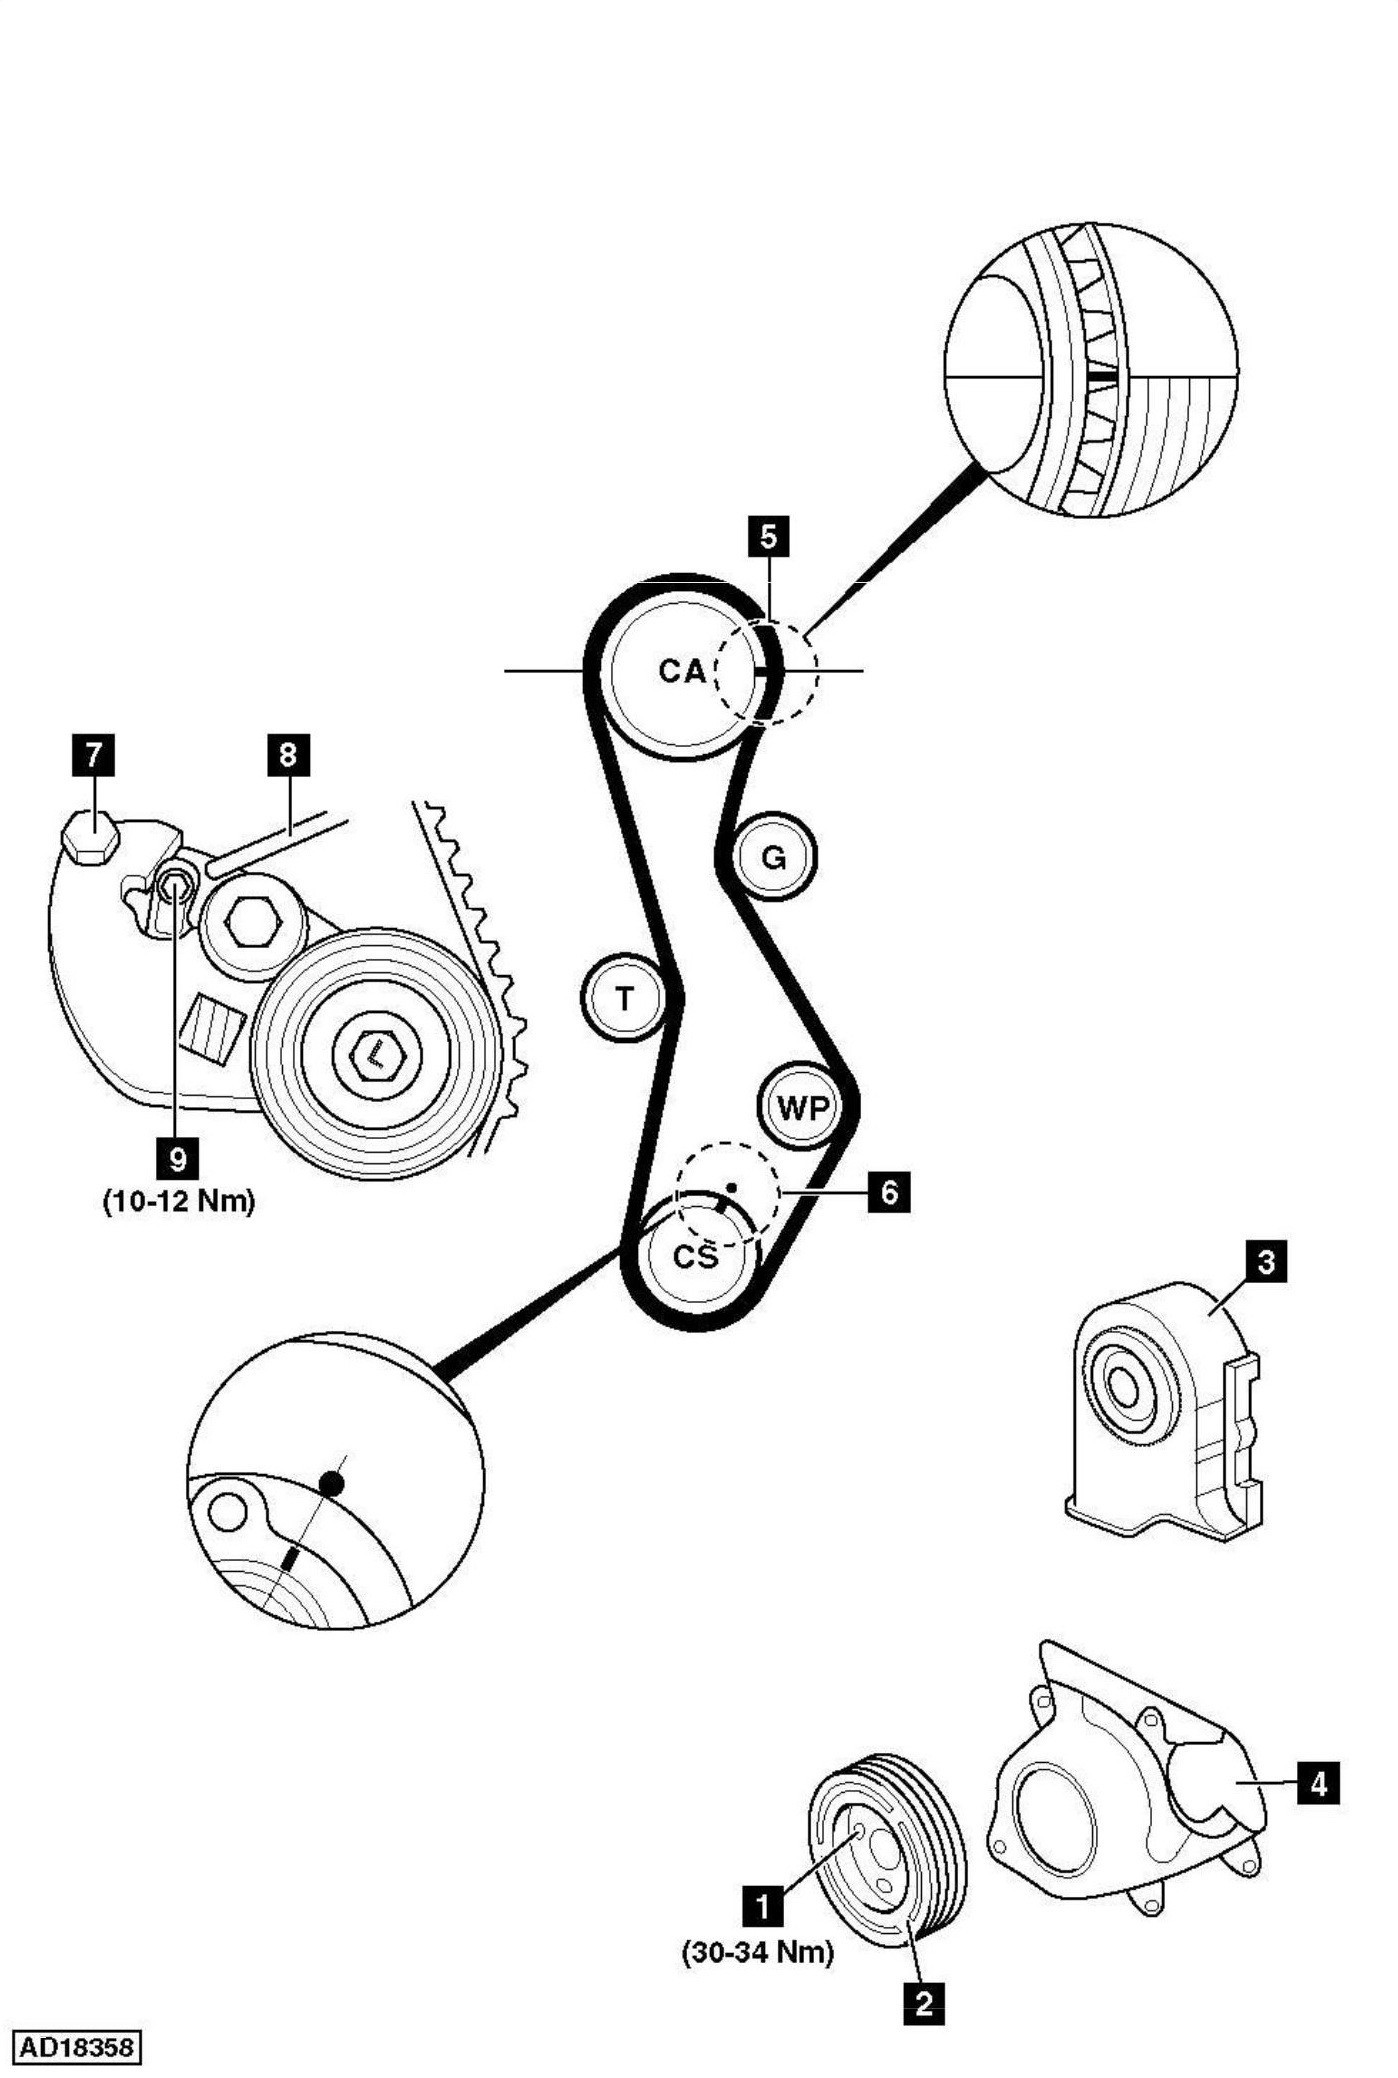 Hyundai Santa Fe Wiring Diagram Mechanic Diagram New Engine Timing Diagram How to Replace Timing Of Hyundai Santa Fe Wiring Diagram